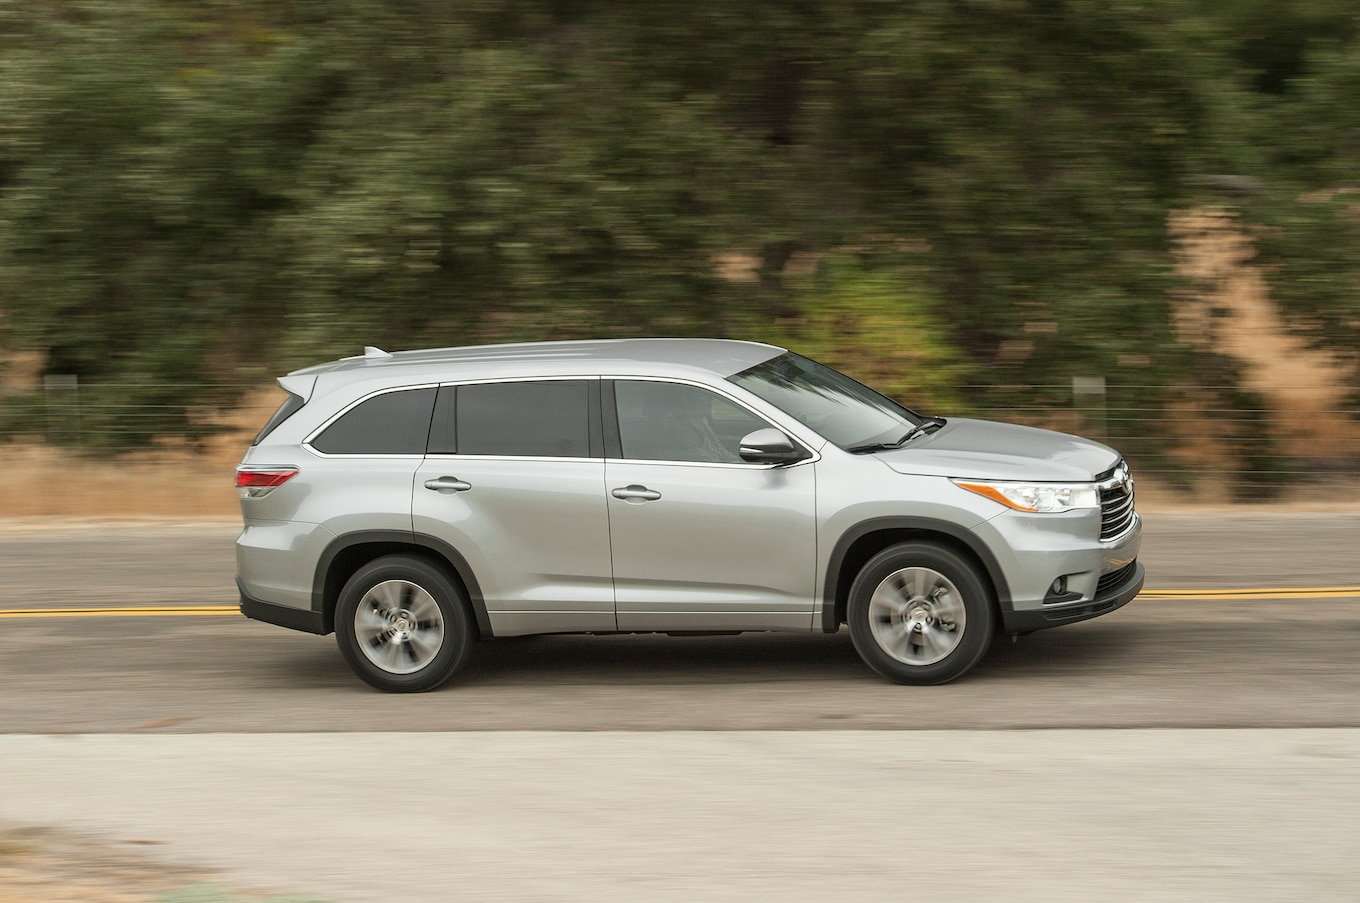 hight resolution of 2015 toyota highlander reviews and rating motor trend 5 6